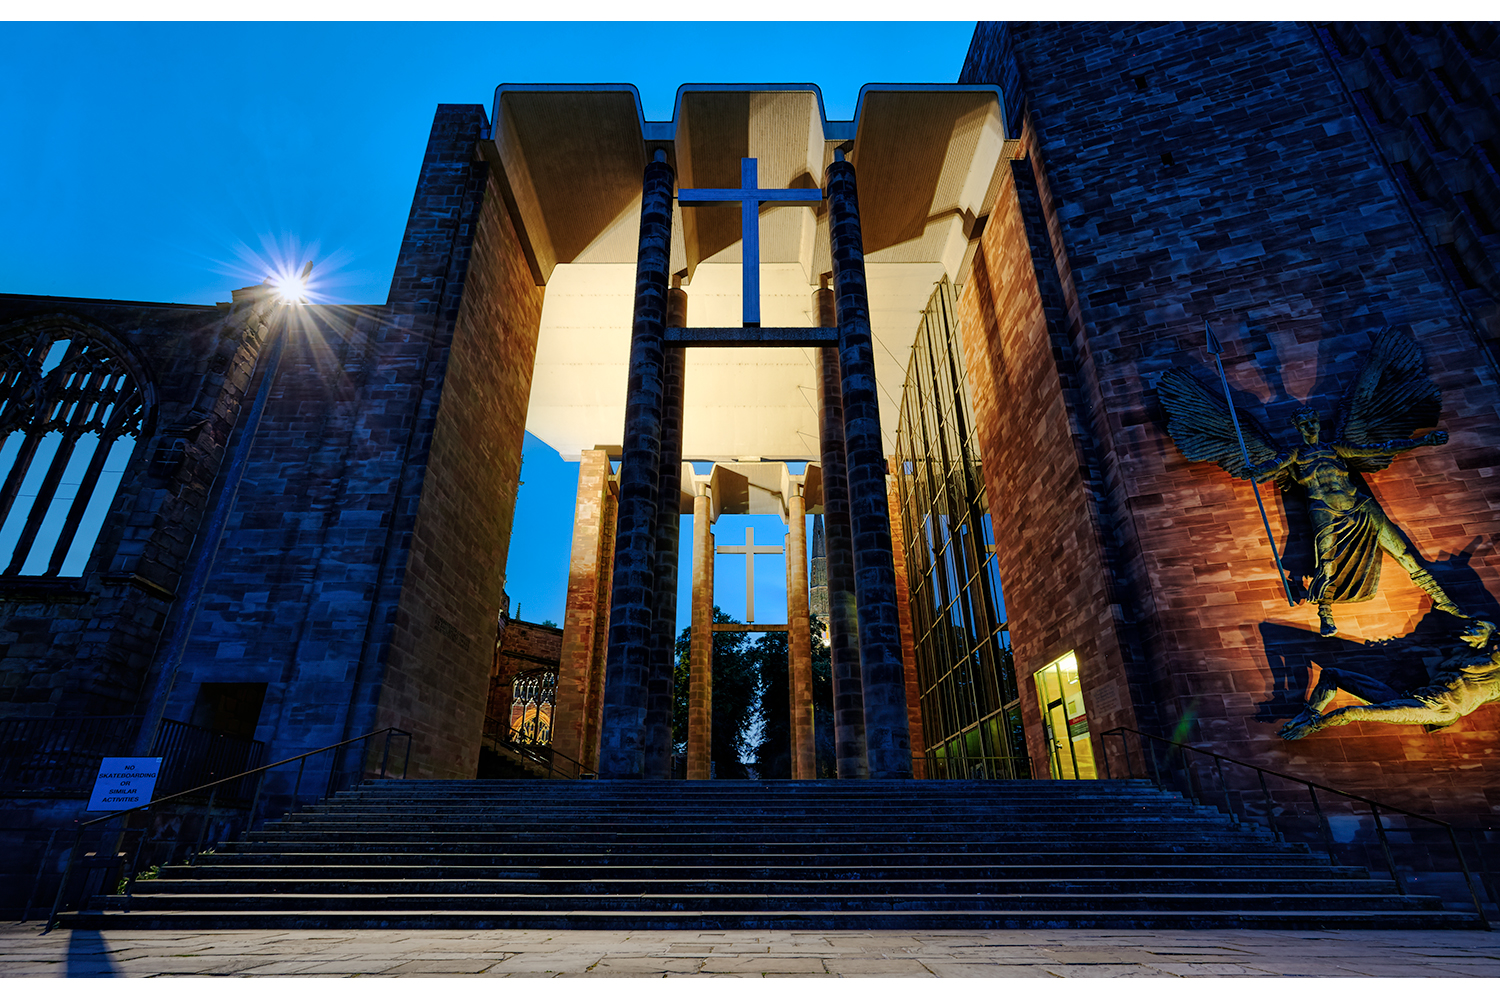 CovCathedral.jpg